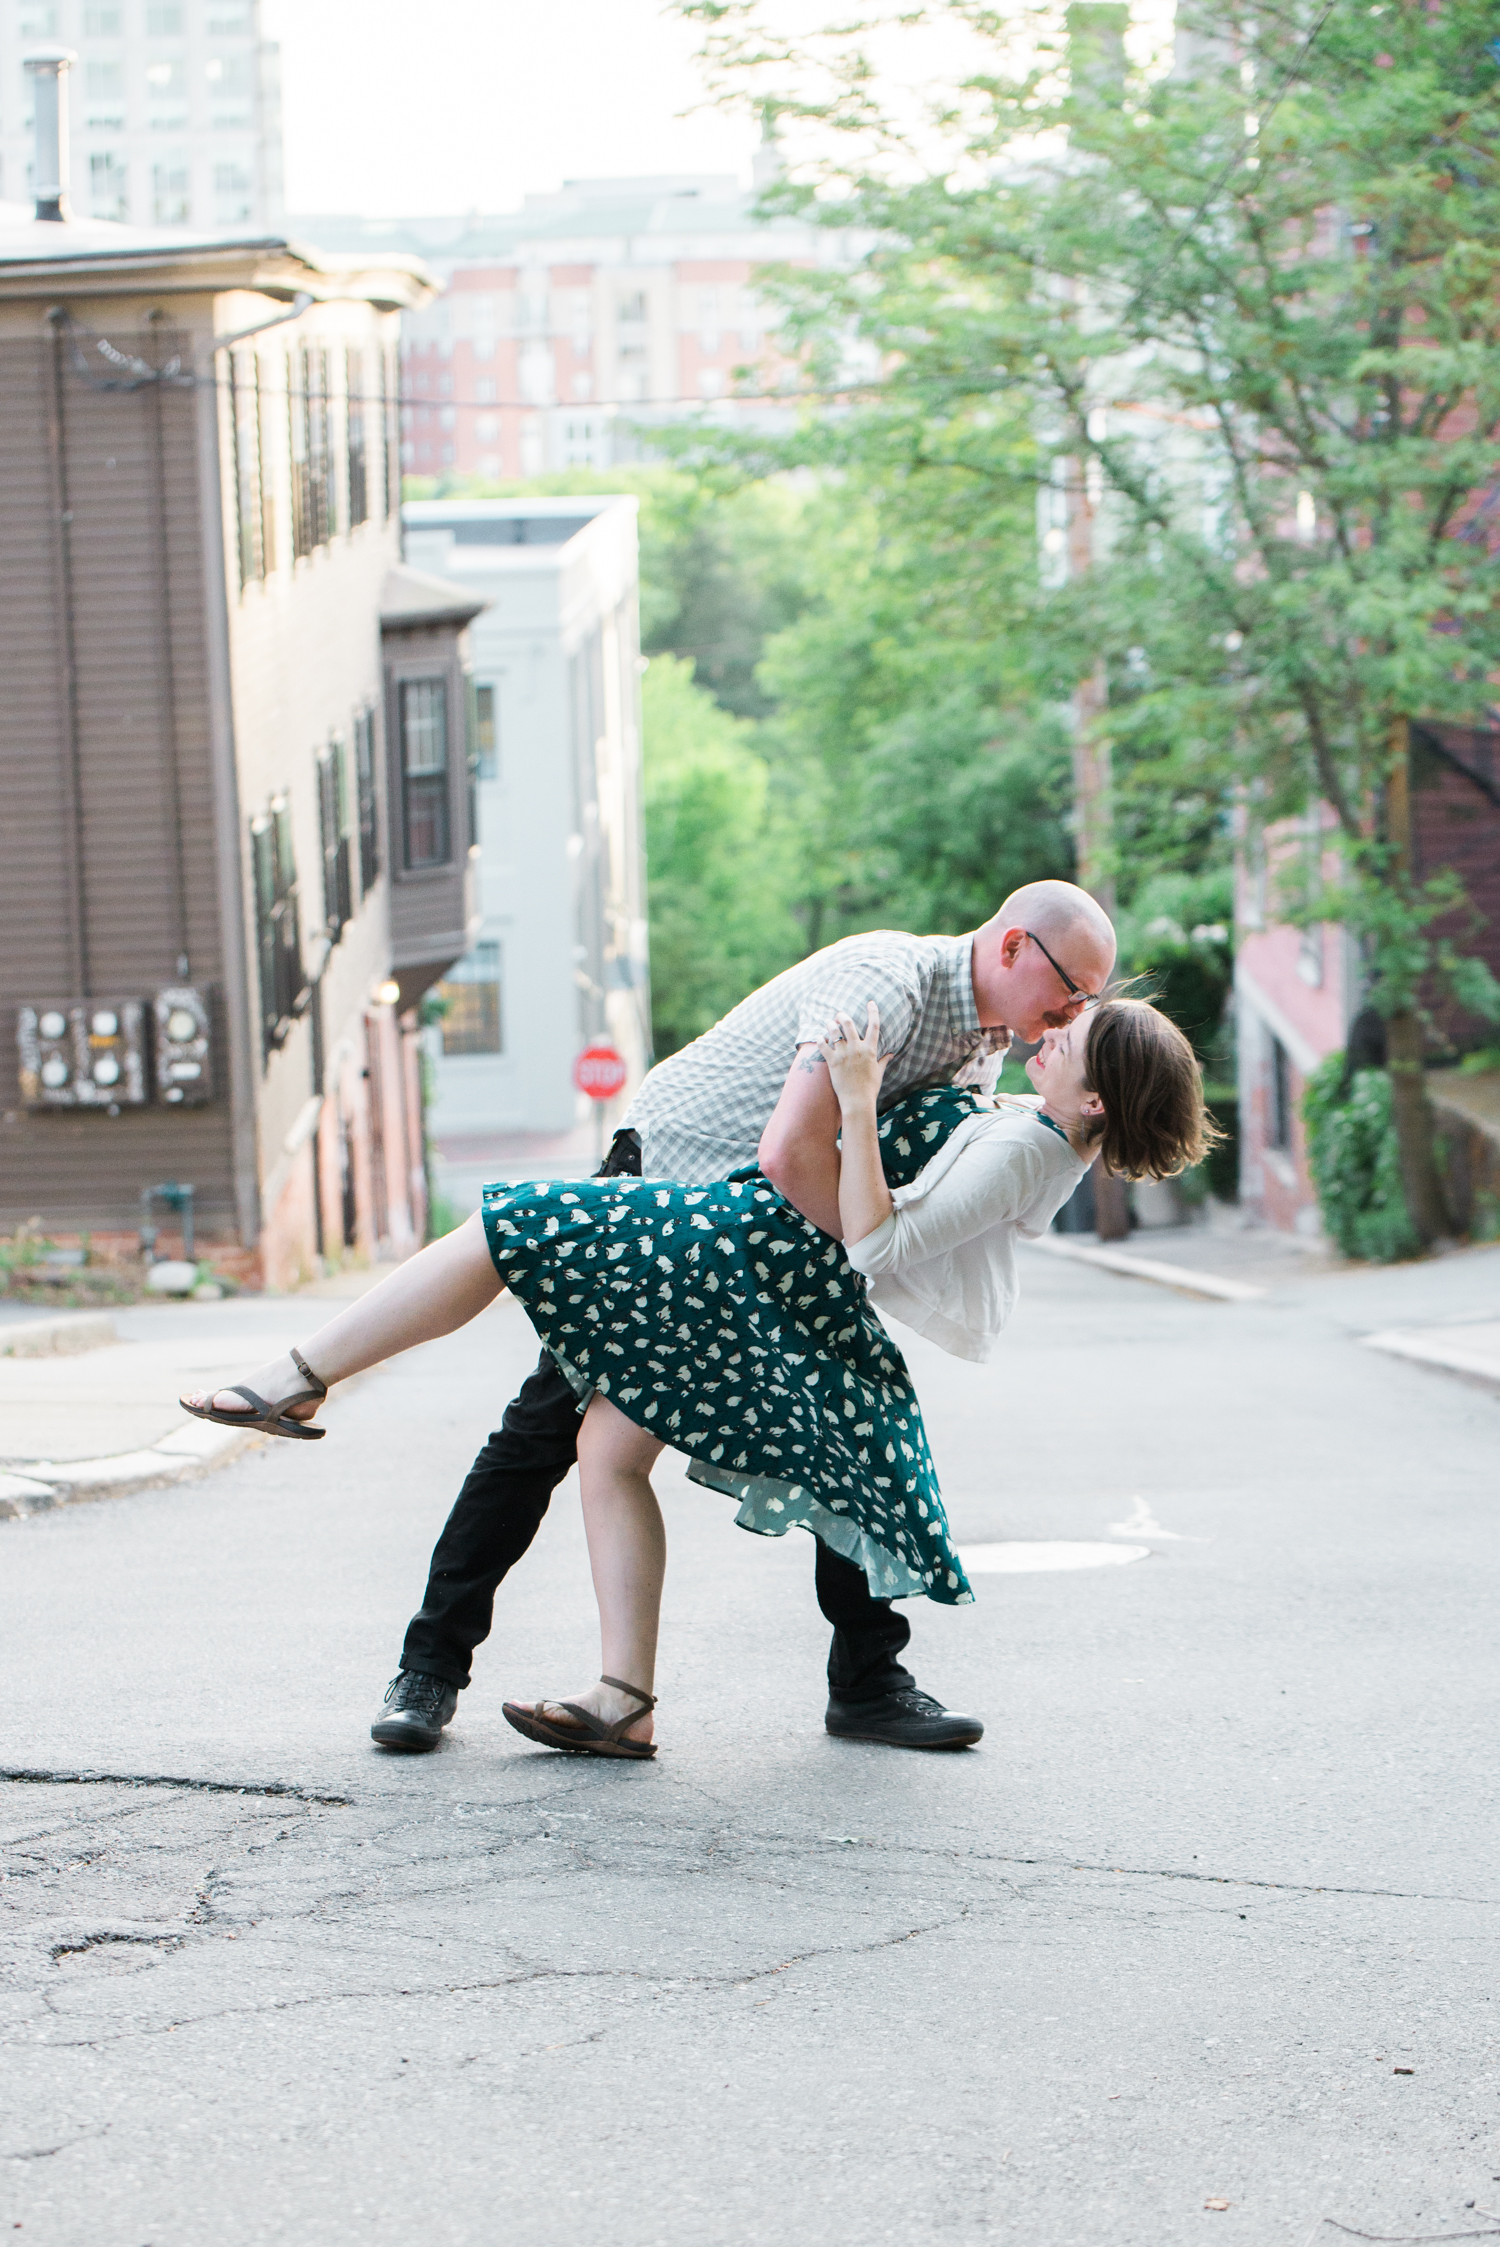 Ephemera Engagement Photography - man dips fiancée in middle of street